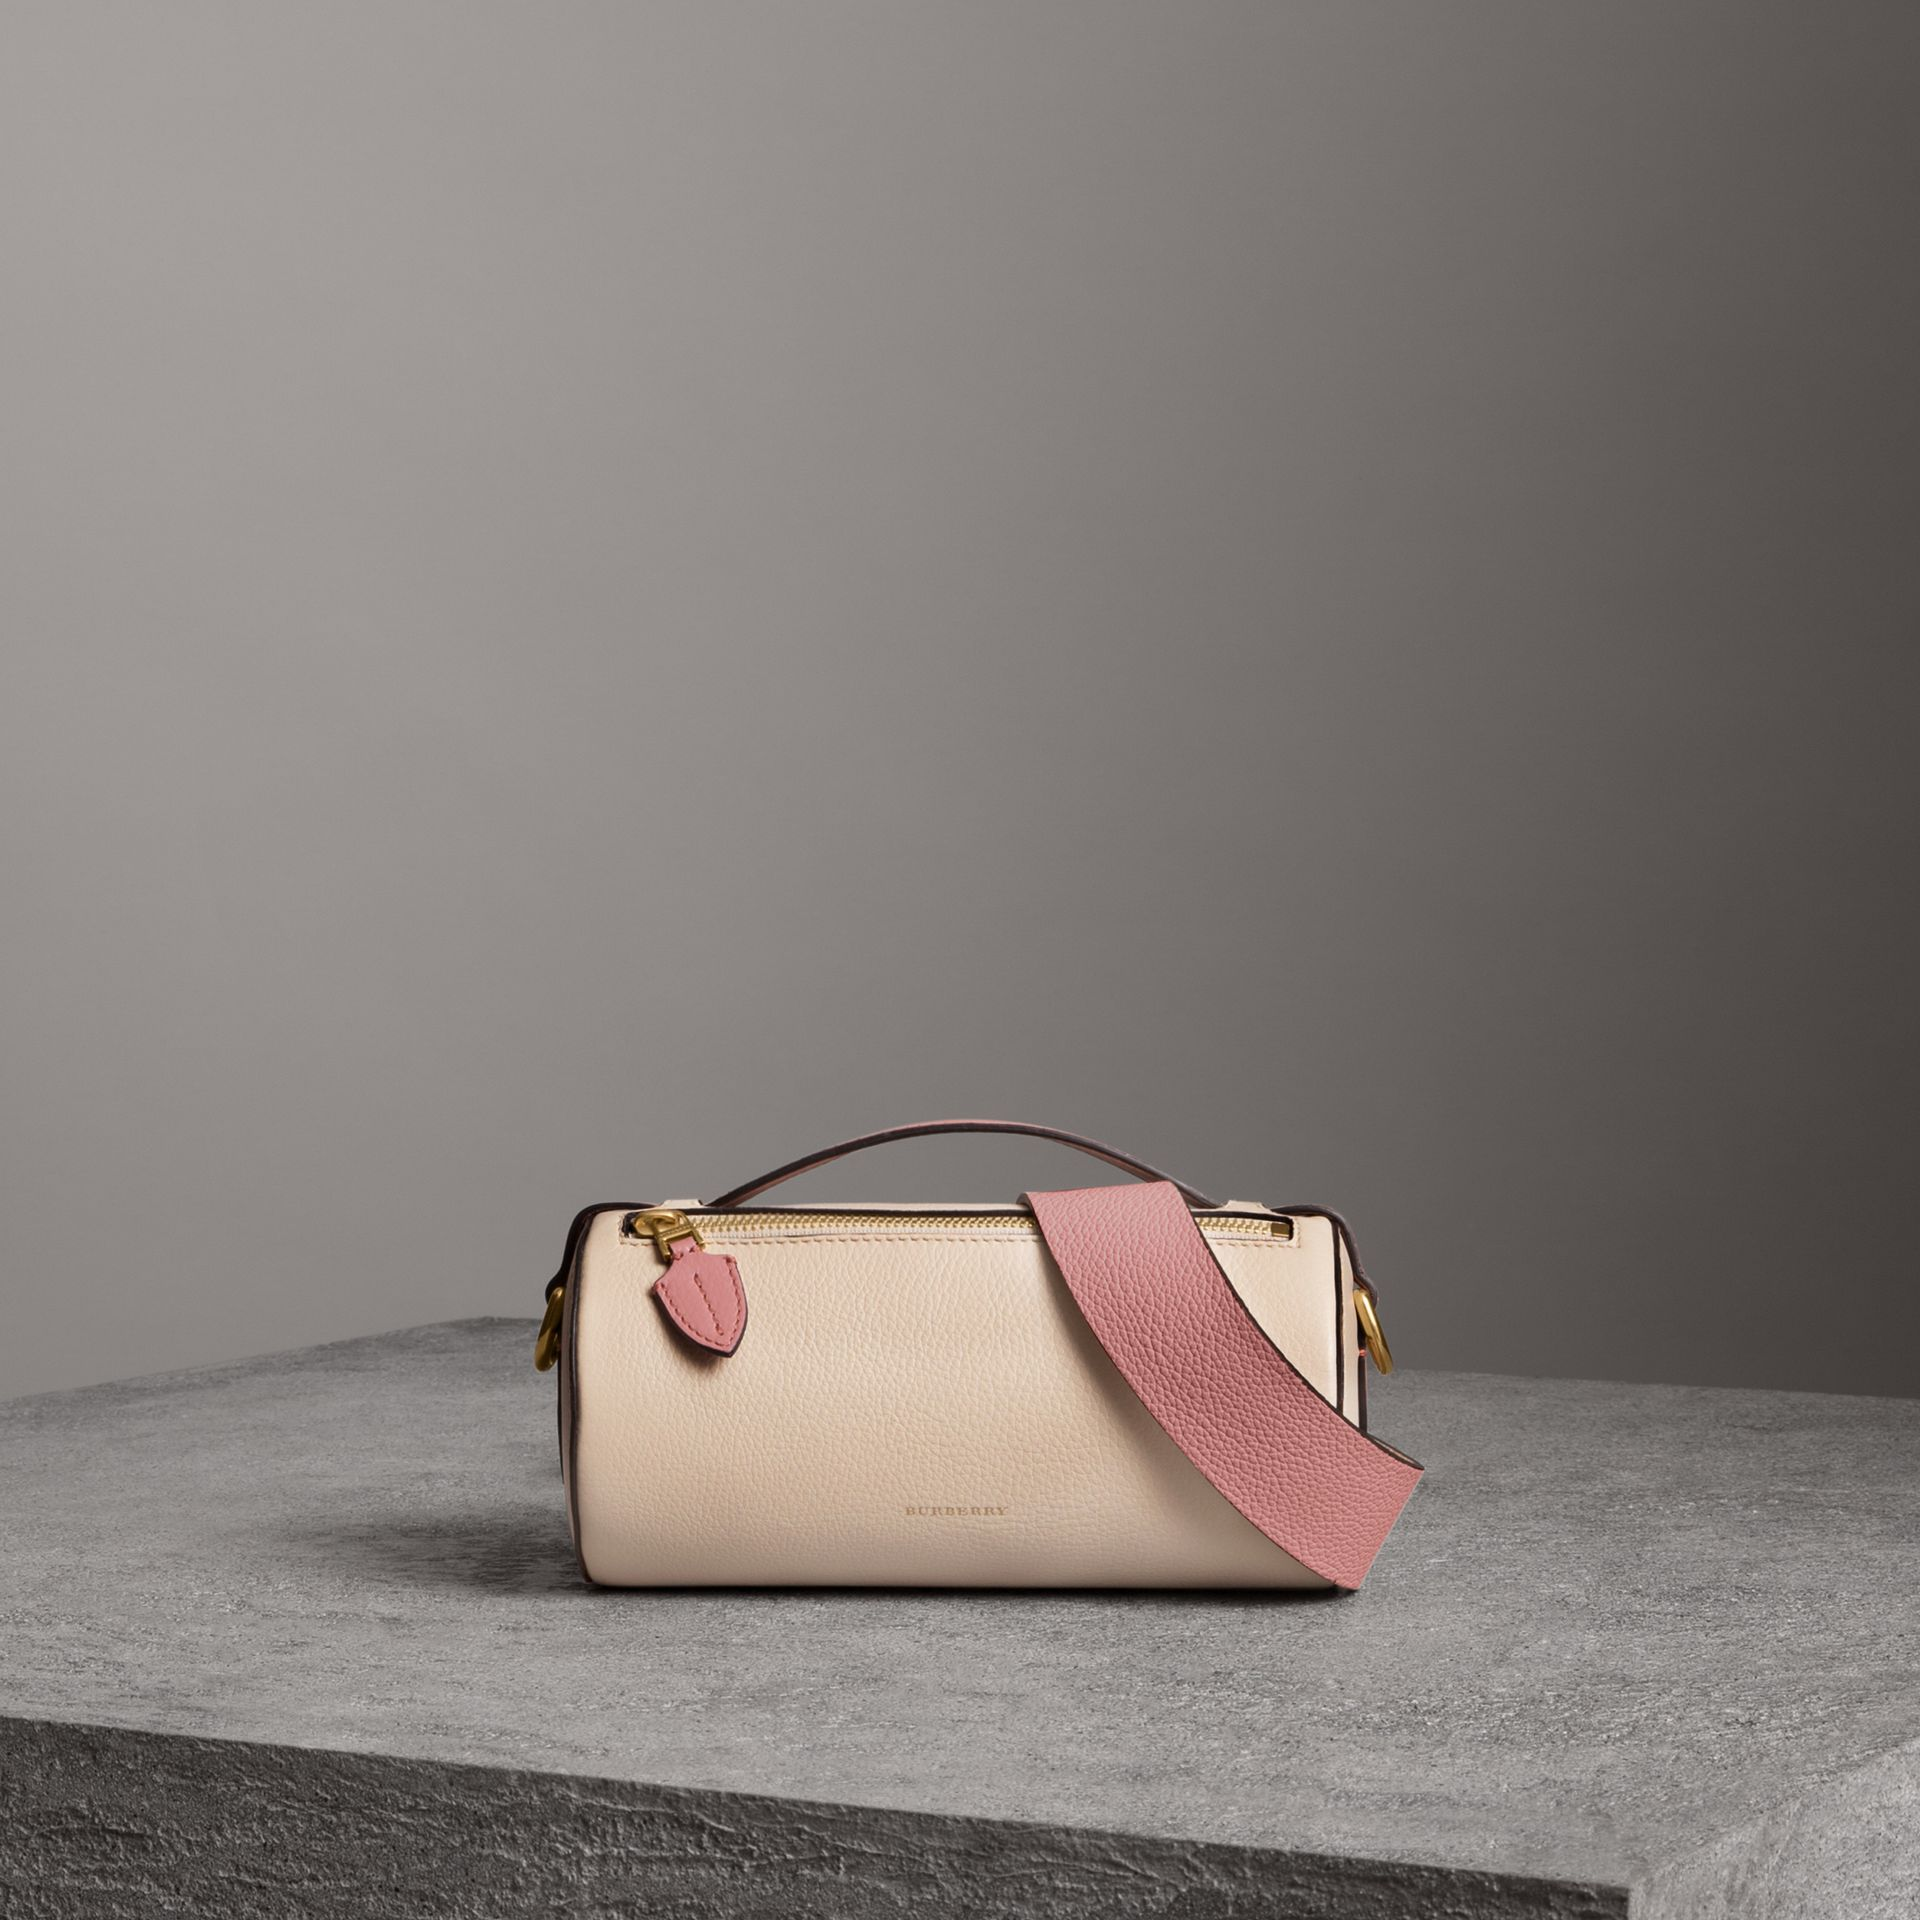 Sac The Barrel en cuir (Calcaire/rose Cendré) - Femme | Burberry Canada - photo de la galerie 0